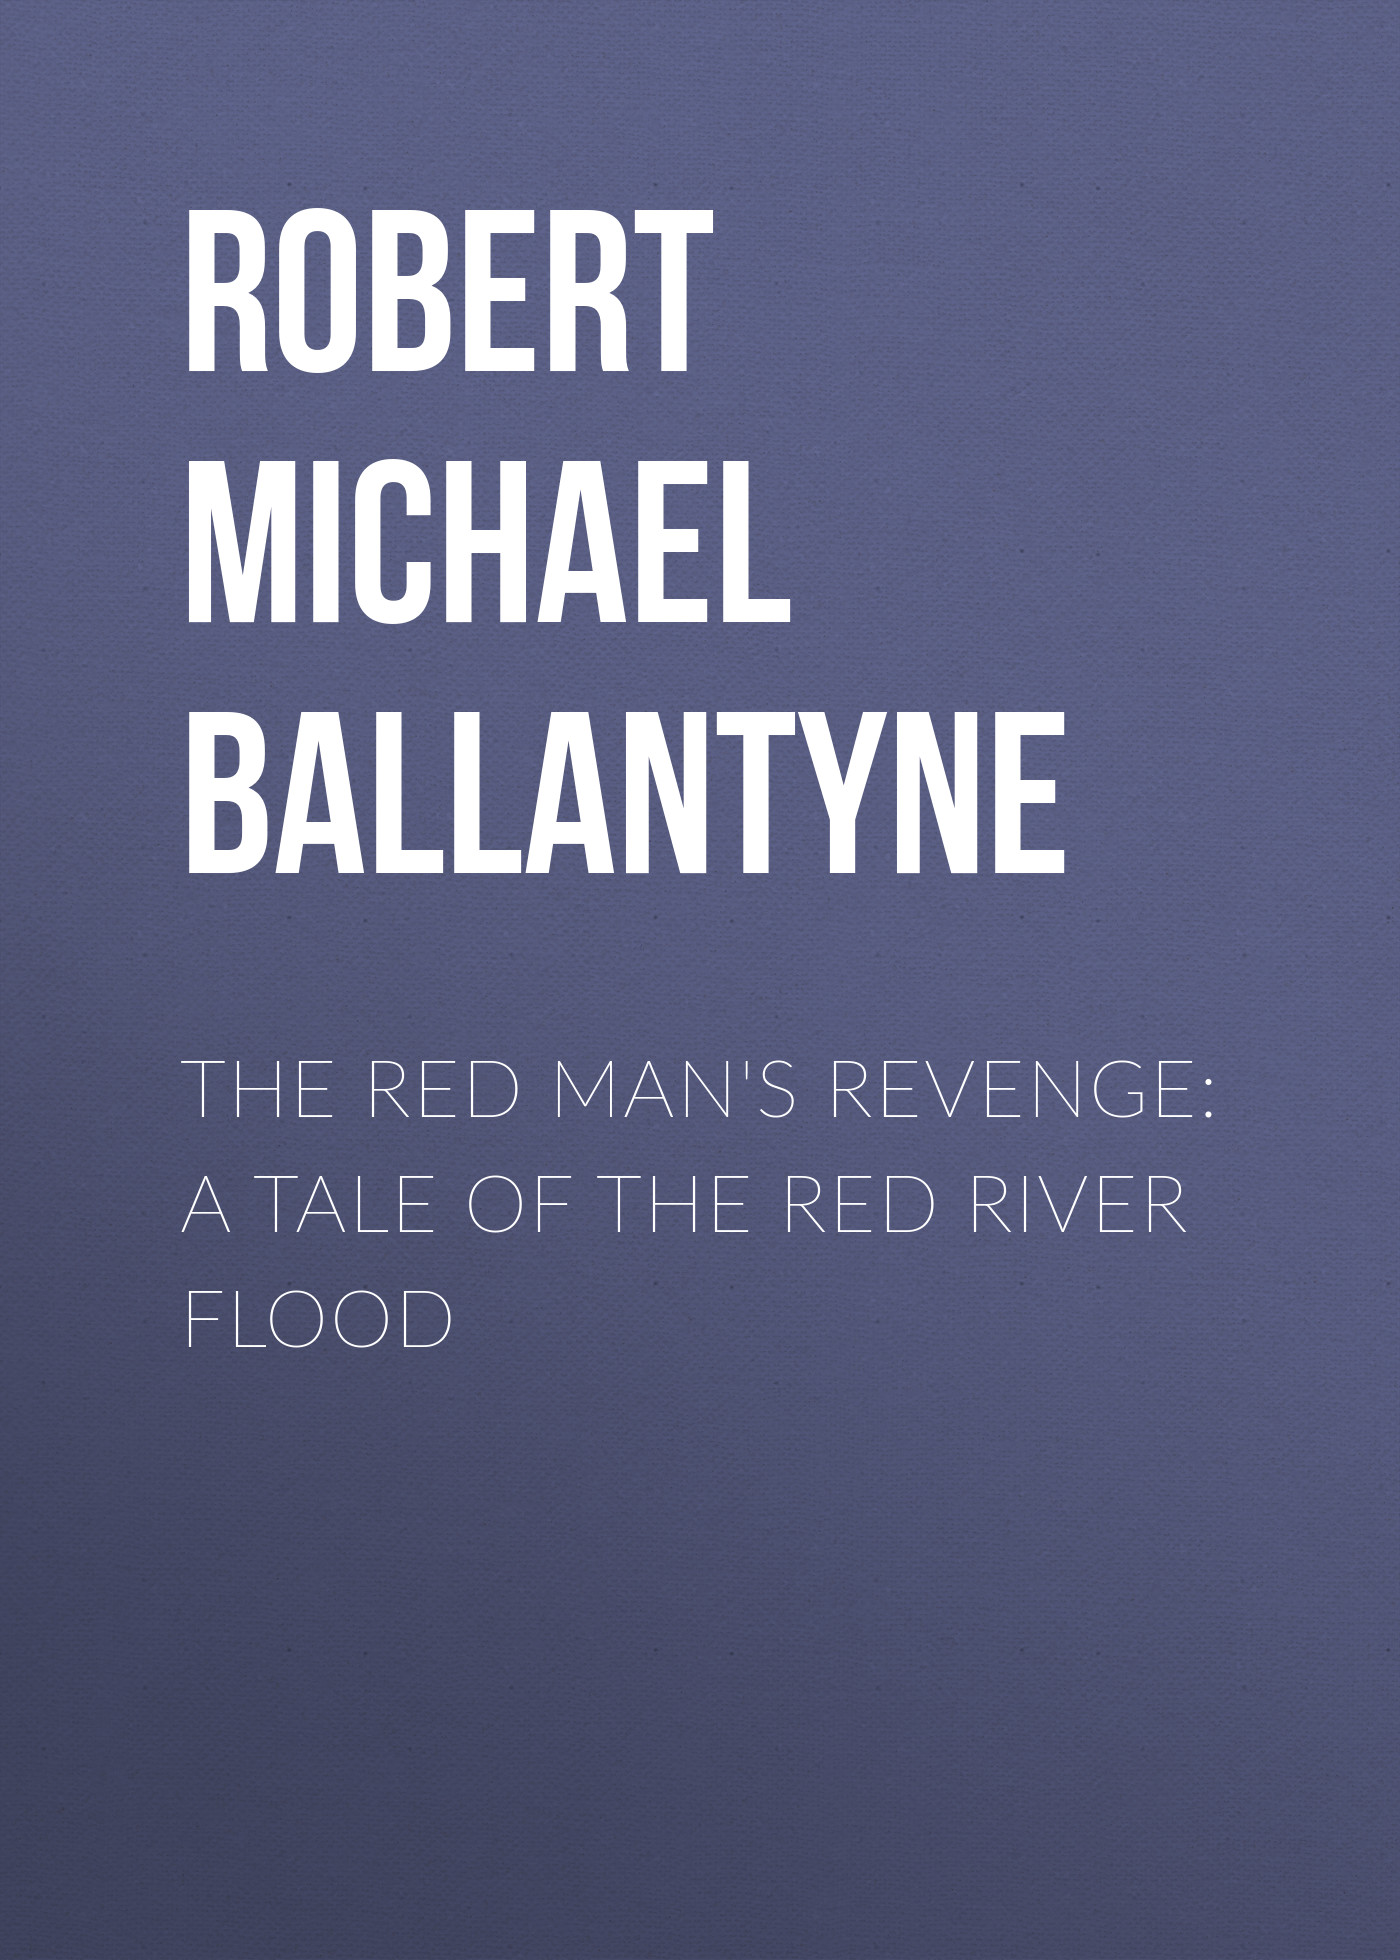 Robert Michael Ballantyne The Red Man's Revenge A Tale of The Red River Flood